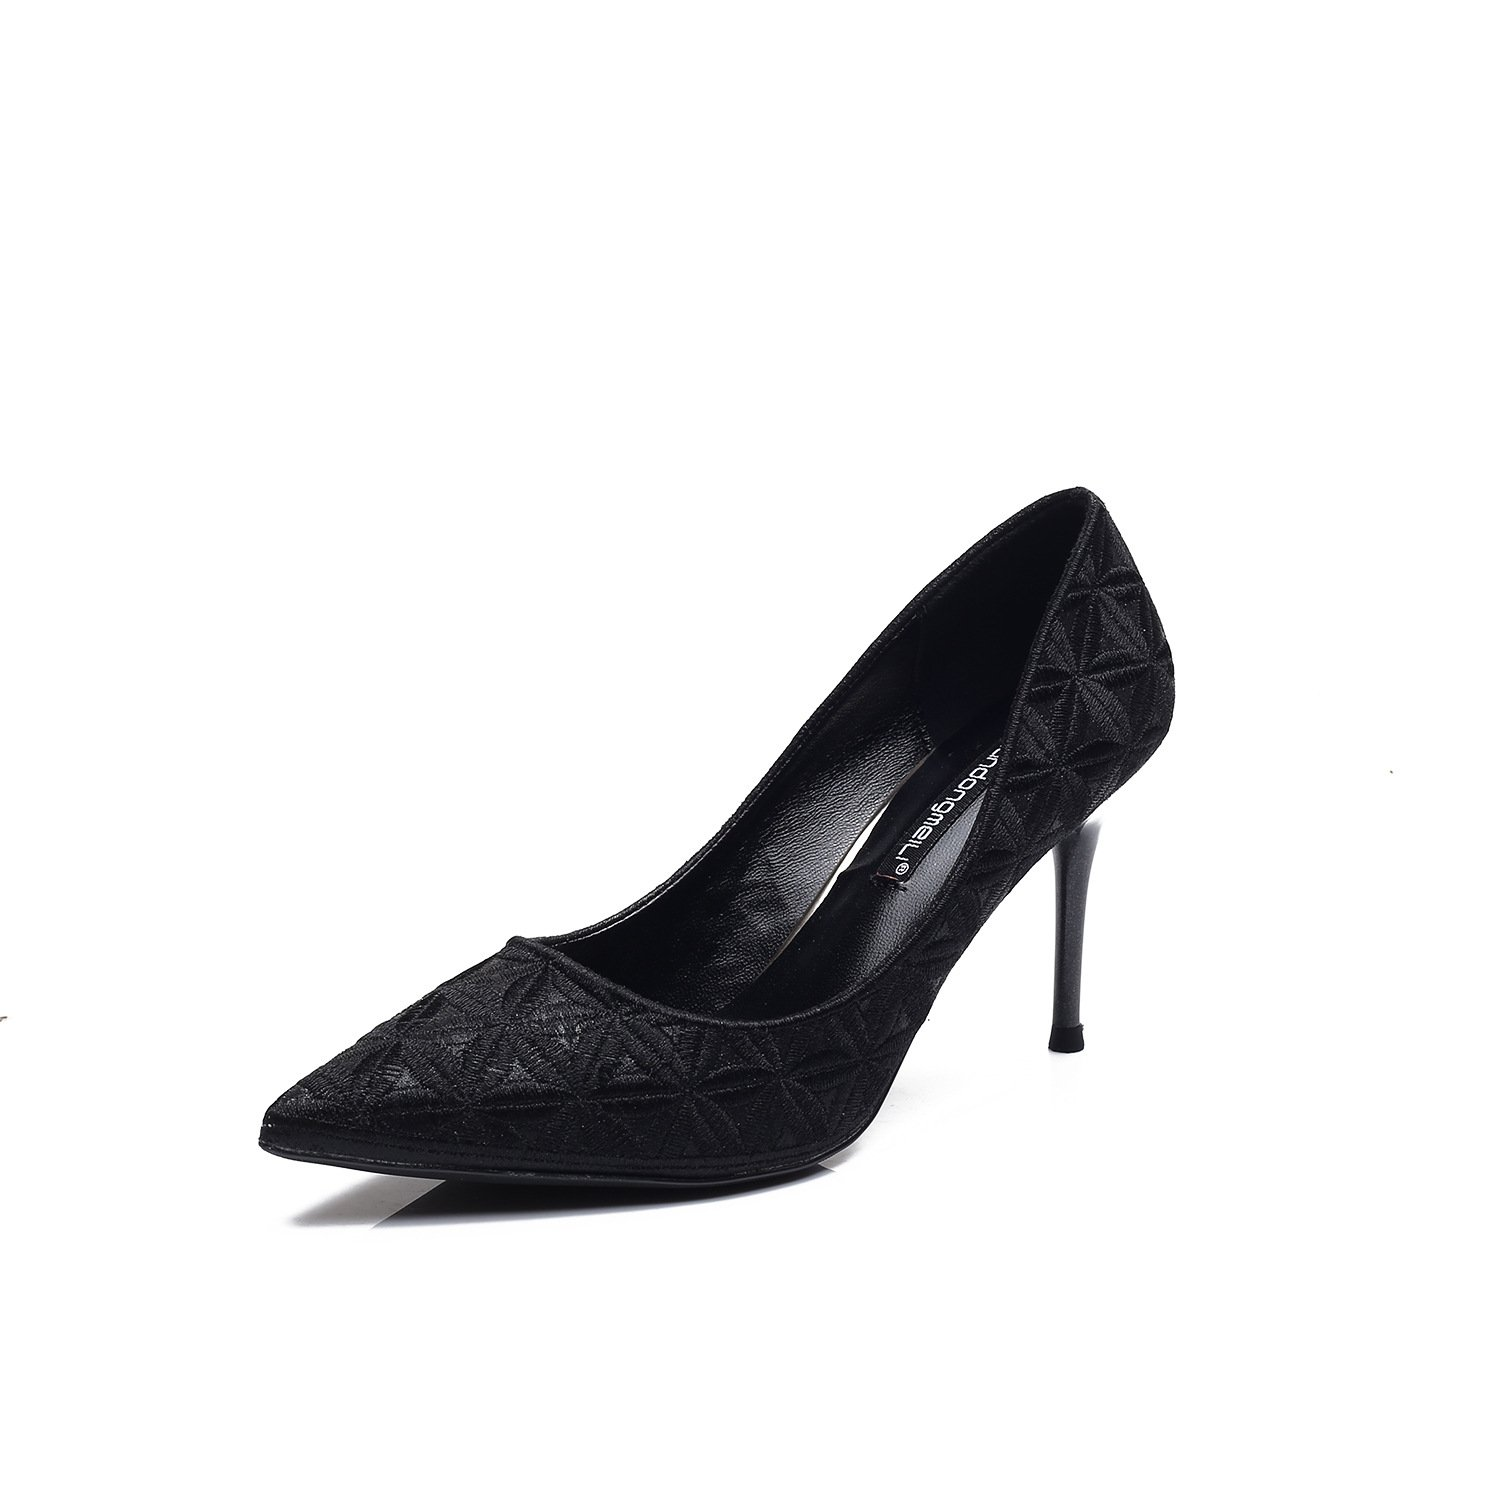 The stylish high-heel shoes in the spring of_2017 sweet, high-heeled shoes with a fine tip satin Embroidery thread single shoes female 2080-31, Black,37